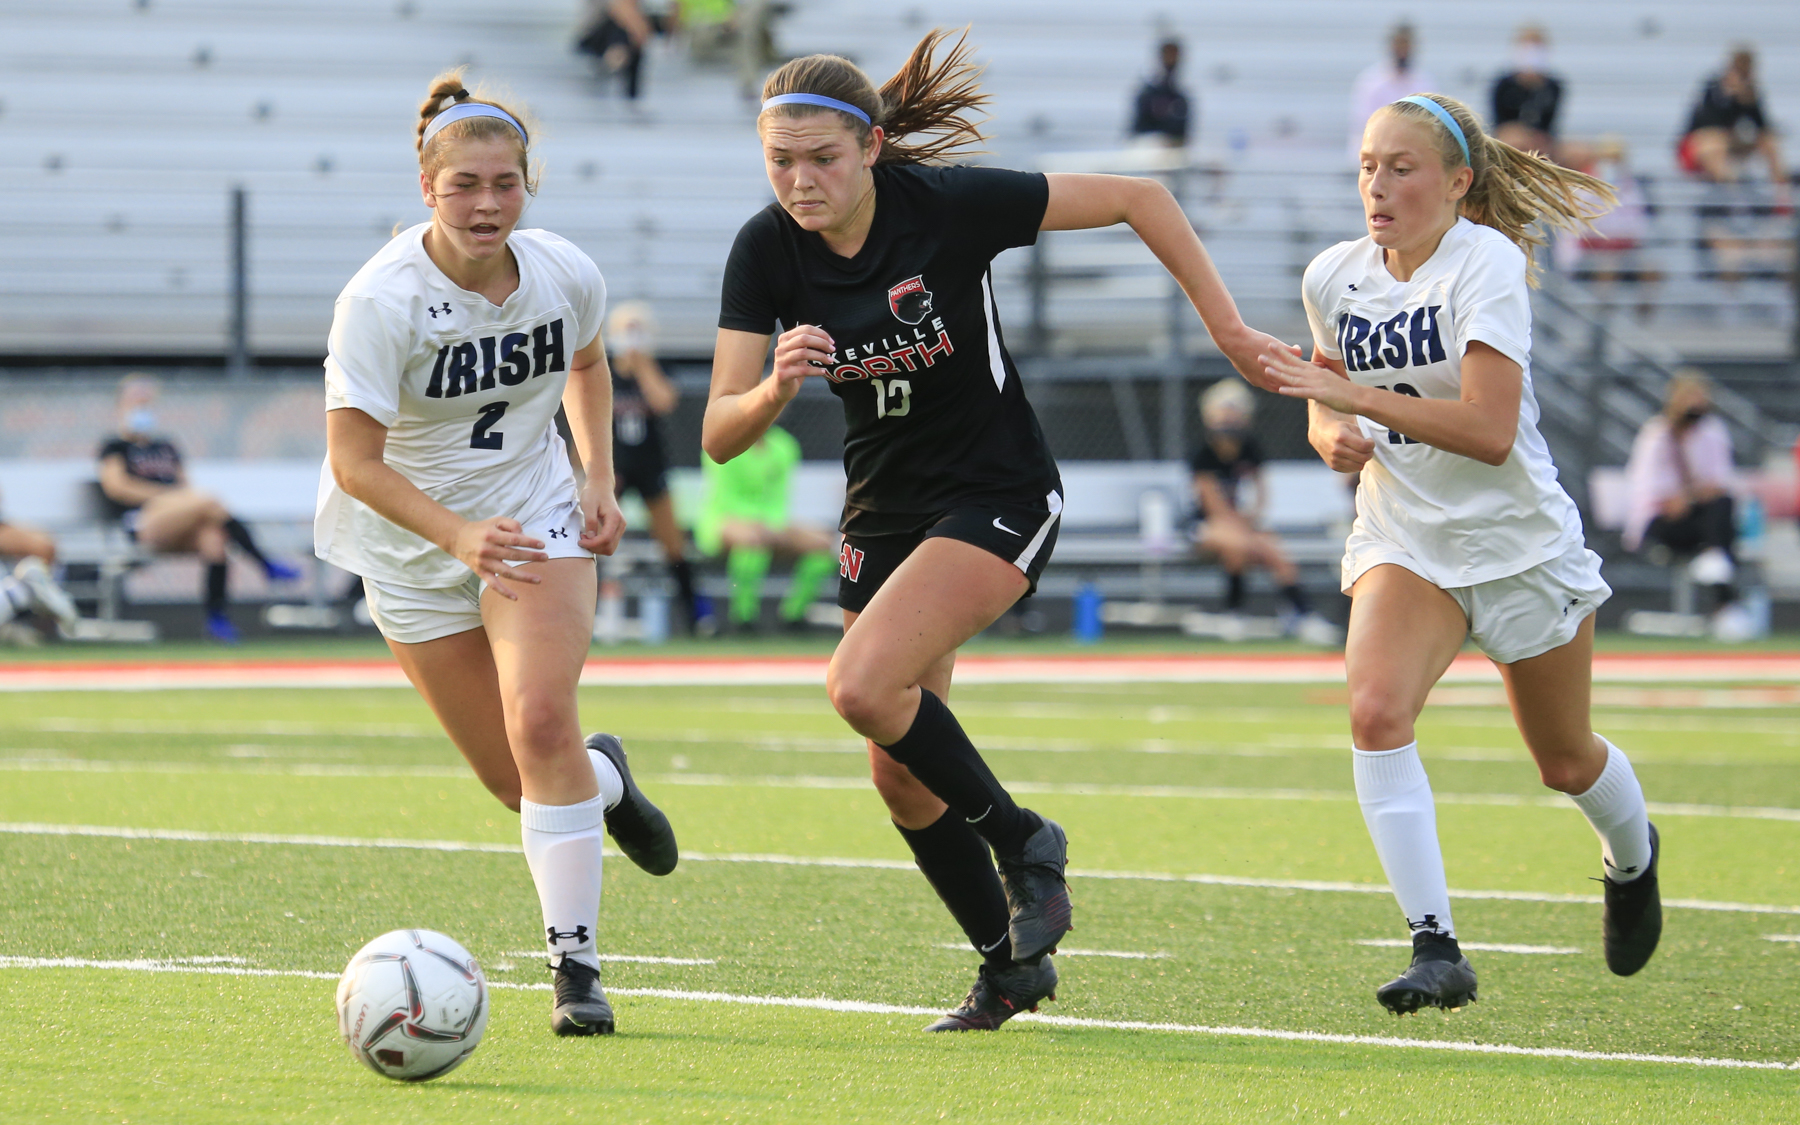 Lakeville North's Abby Ruhland (13) attempts to outrun Rosemount's Joey Edgar (left) and Ashley Herold (right) during Tuesday evening's game. The Panthers and Irish played to a 0-0 draw at Lakeville North High School. Photo by Jeff Lawler, SportsEngine